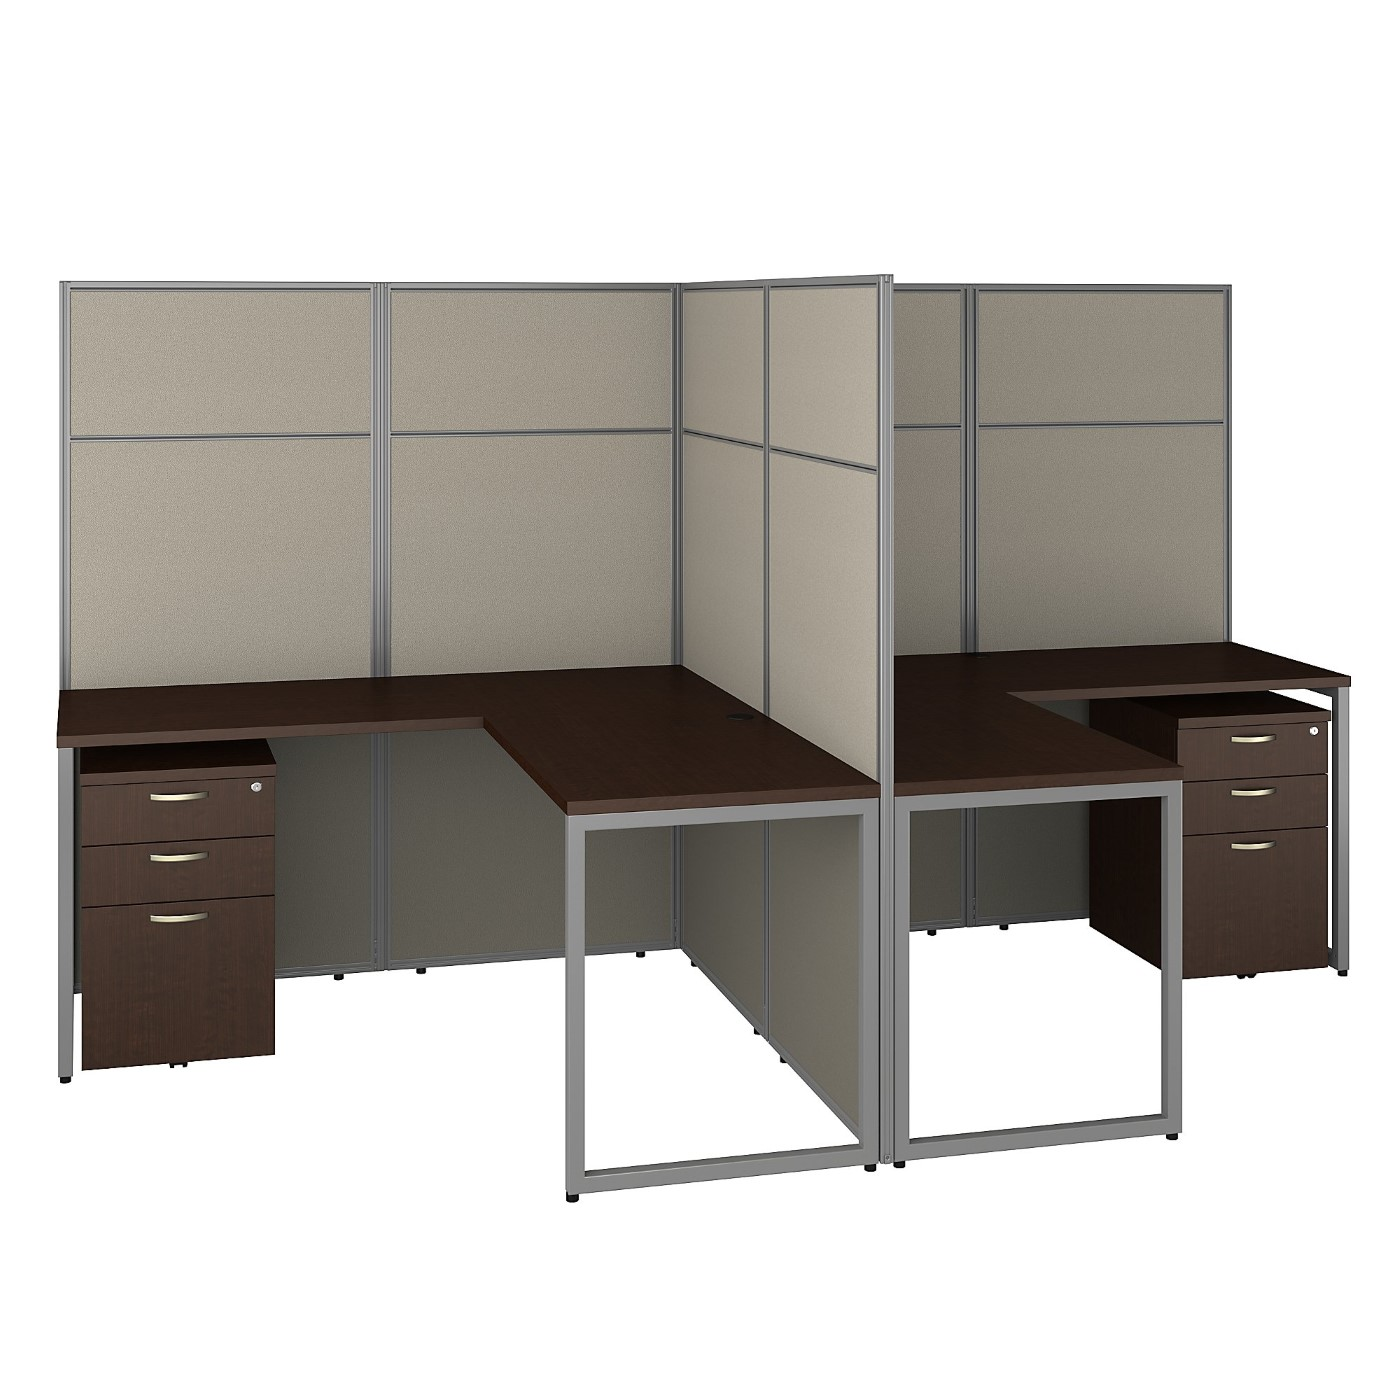 BUSH BUSINESS FURNITURE EASY OFFICE 60W 2 PERSON L SHAPED CUBICLE DESK WITH DRAWERS AND 66H PANELS. FREE SHIPPING 30H x 72L x 72W.  SALE DEDUCT 10% MORE ENTER '10percent' IN COUPON CODE BOX WHILE CHECKING OUT. ENDS 5-31-20.